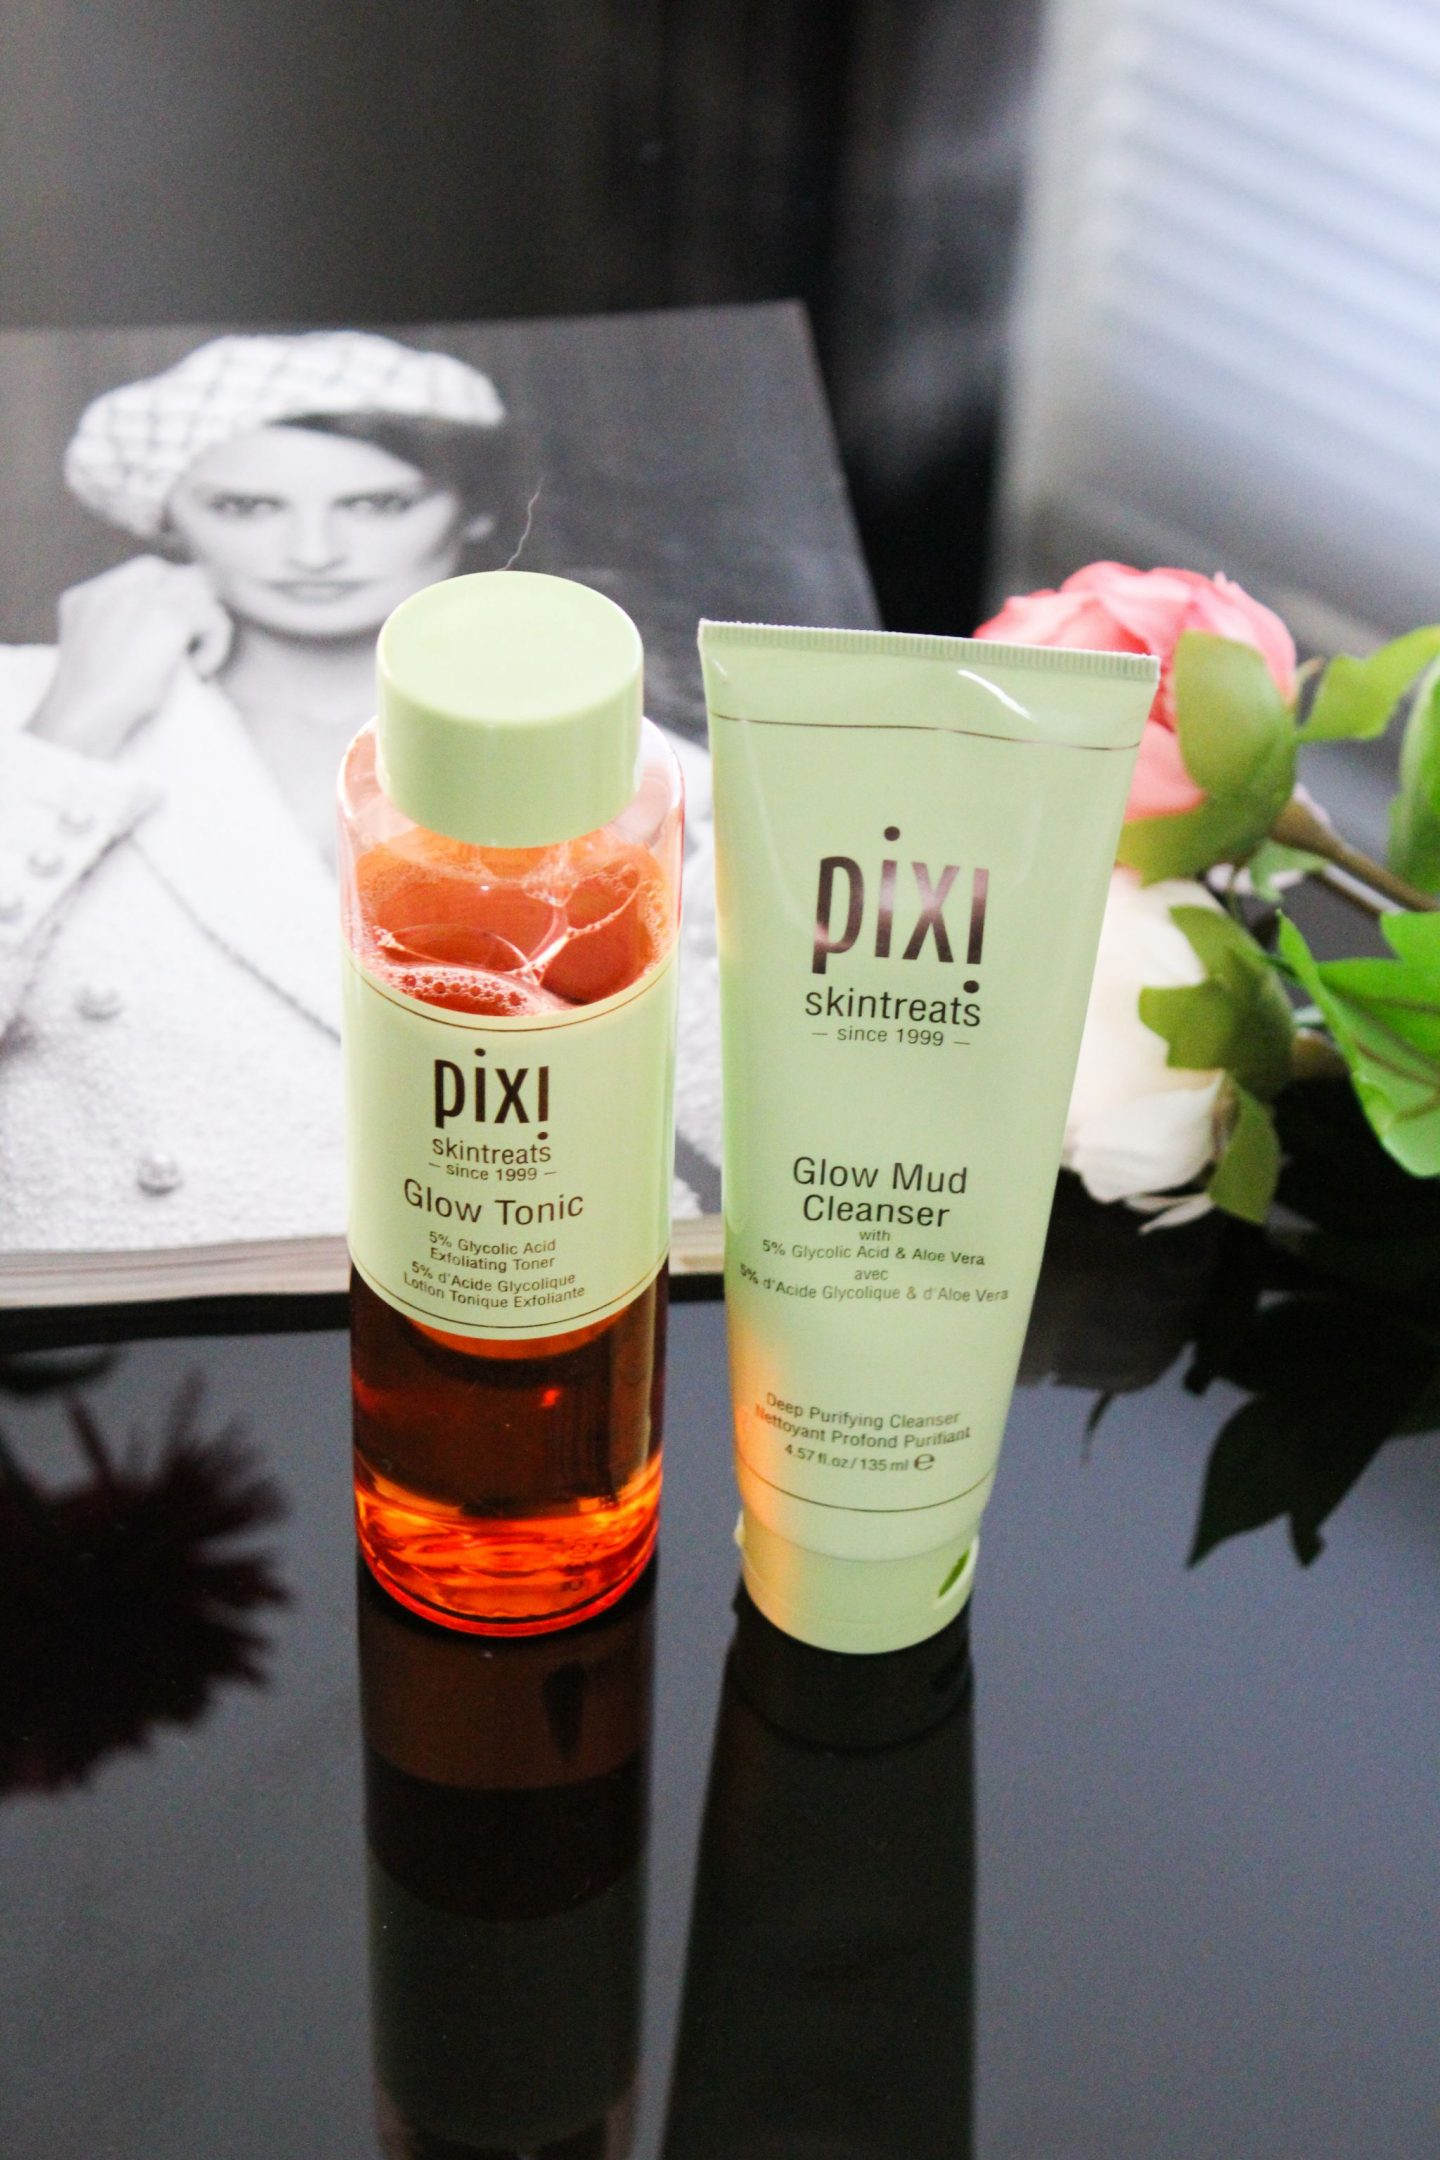 Pixi Glow Tonic, Pixi Glow Must Cleanser, 1st Quarter of 2019 Favourites